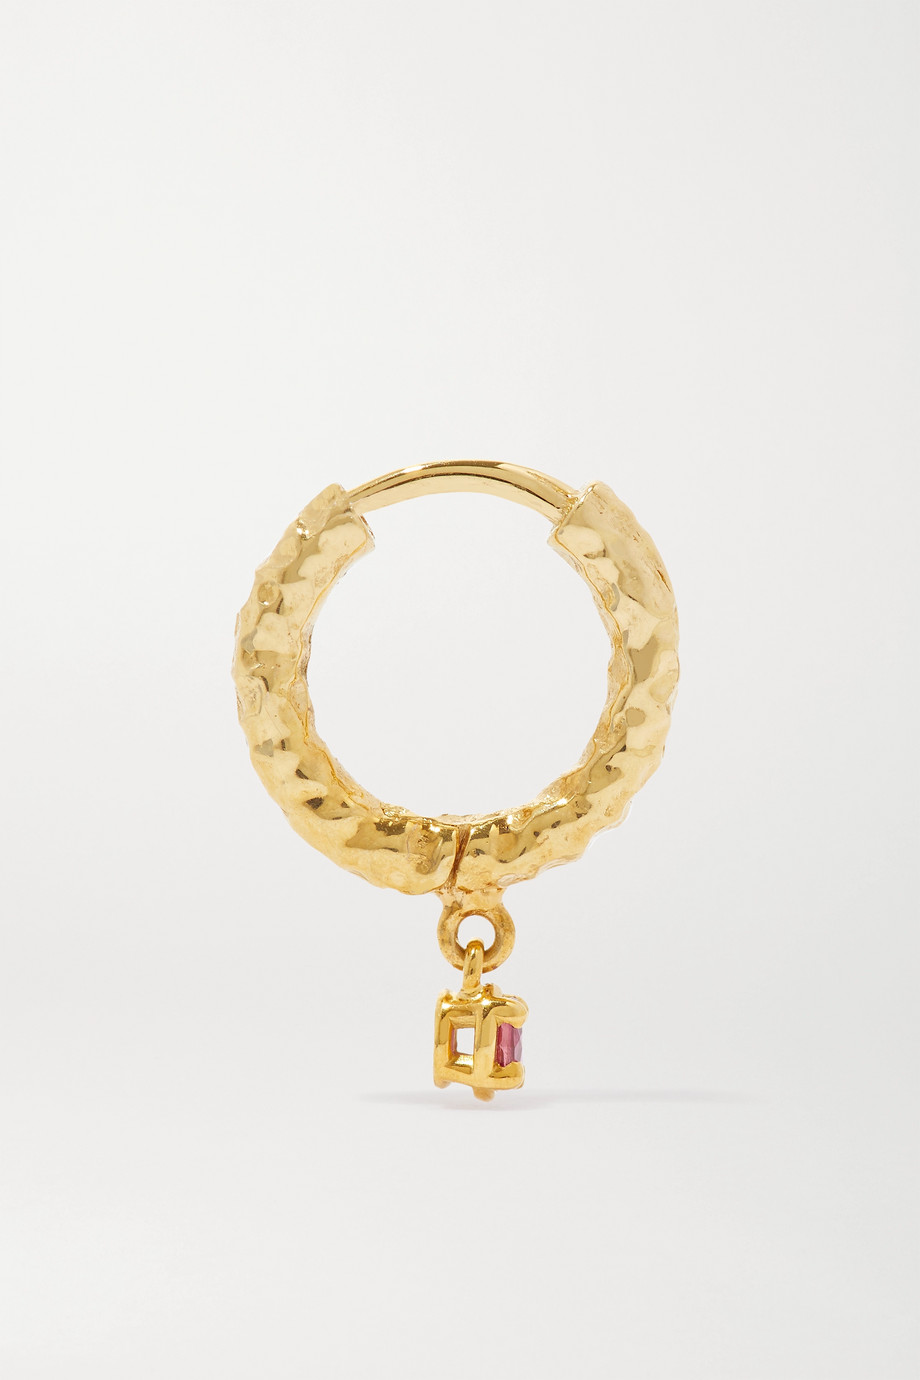 Octavia Elizabeth + NET SUSTAIN Micro Gabby 18-karat recycled gold ruby hoop earrings